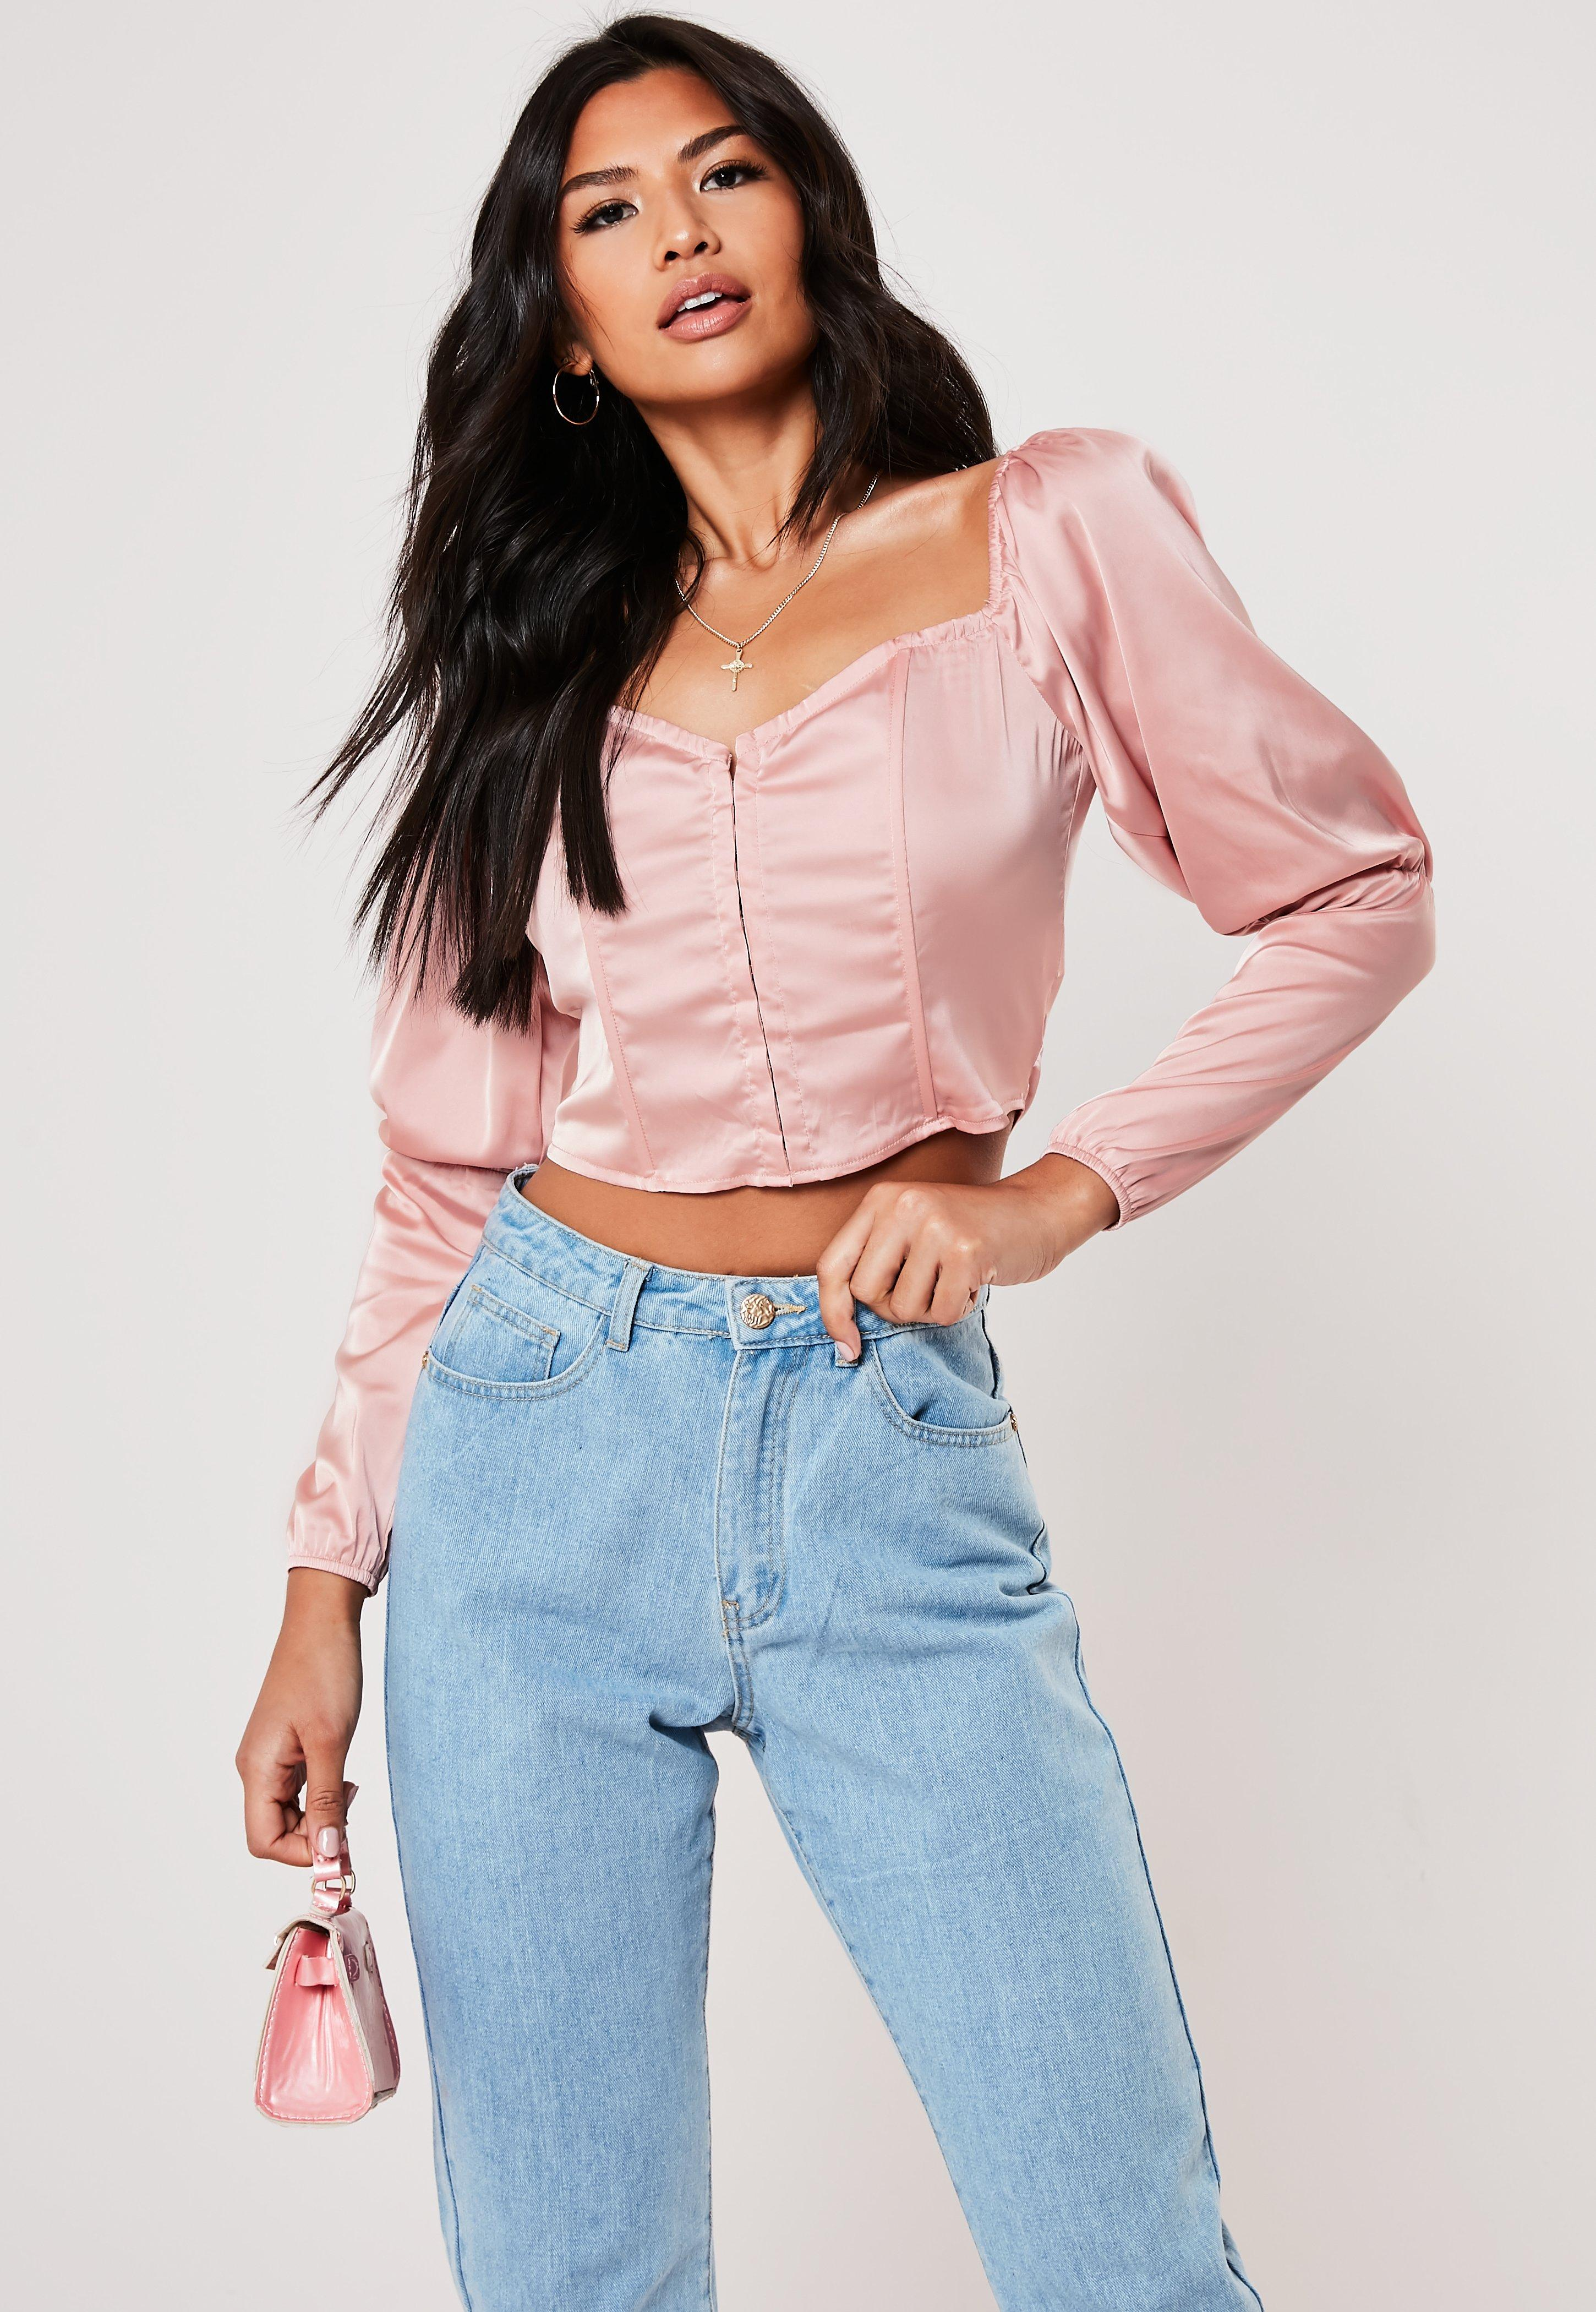 188e15884035ef Going Out Tops, Women's Party & Evening Tops   Missguided